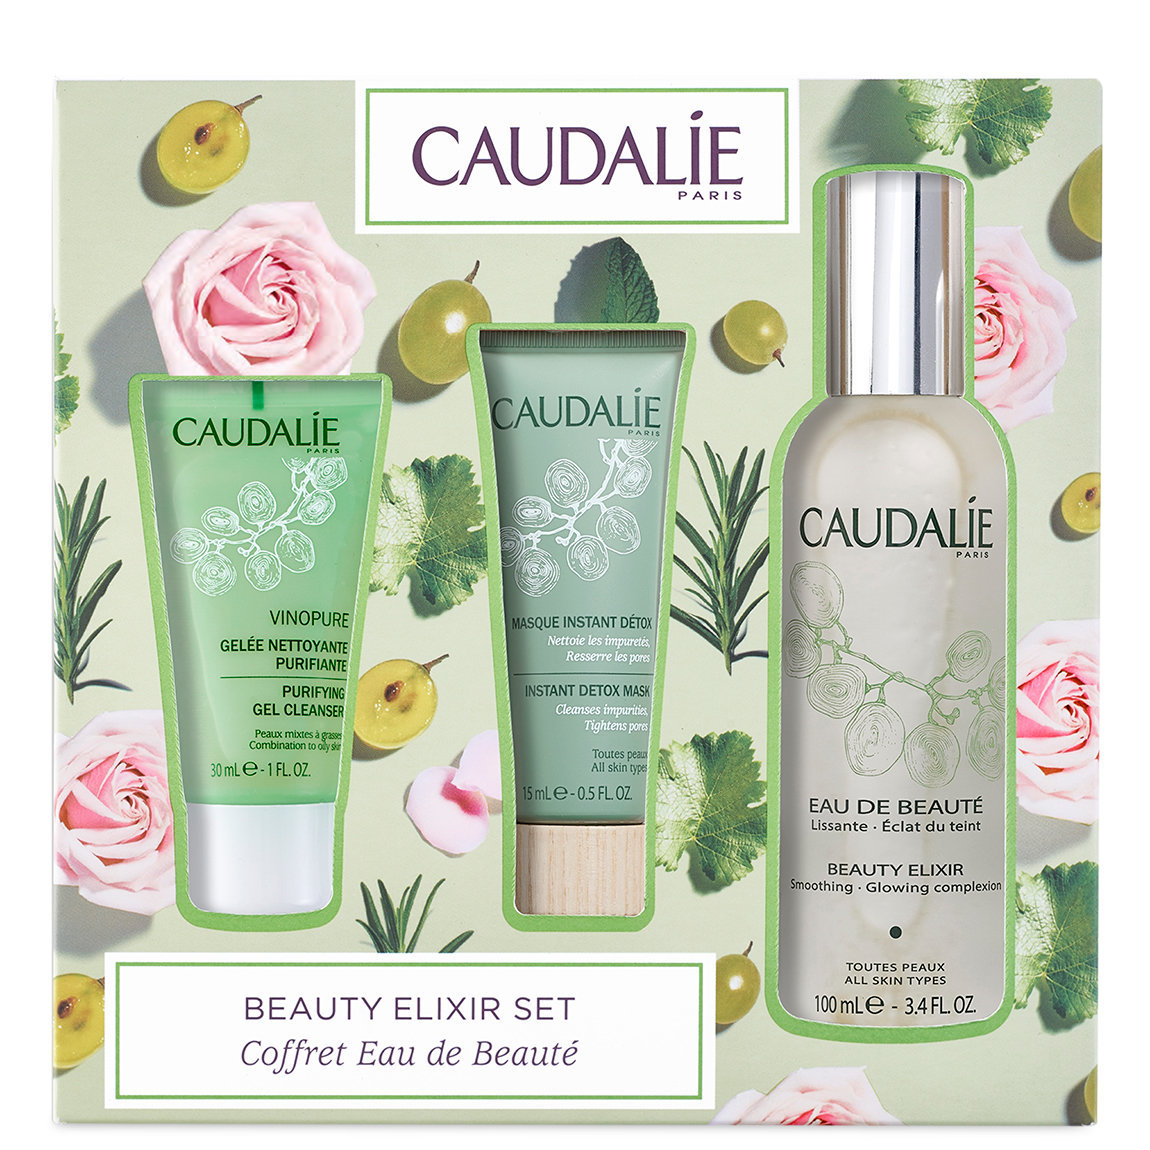 Caudalie Beauty Elixir Glow Perfecting Set product swatch.